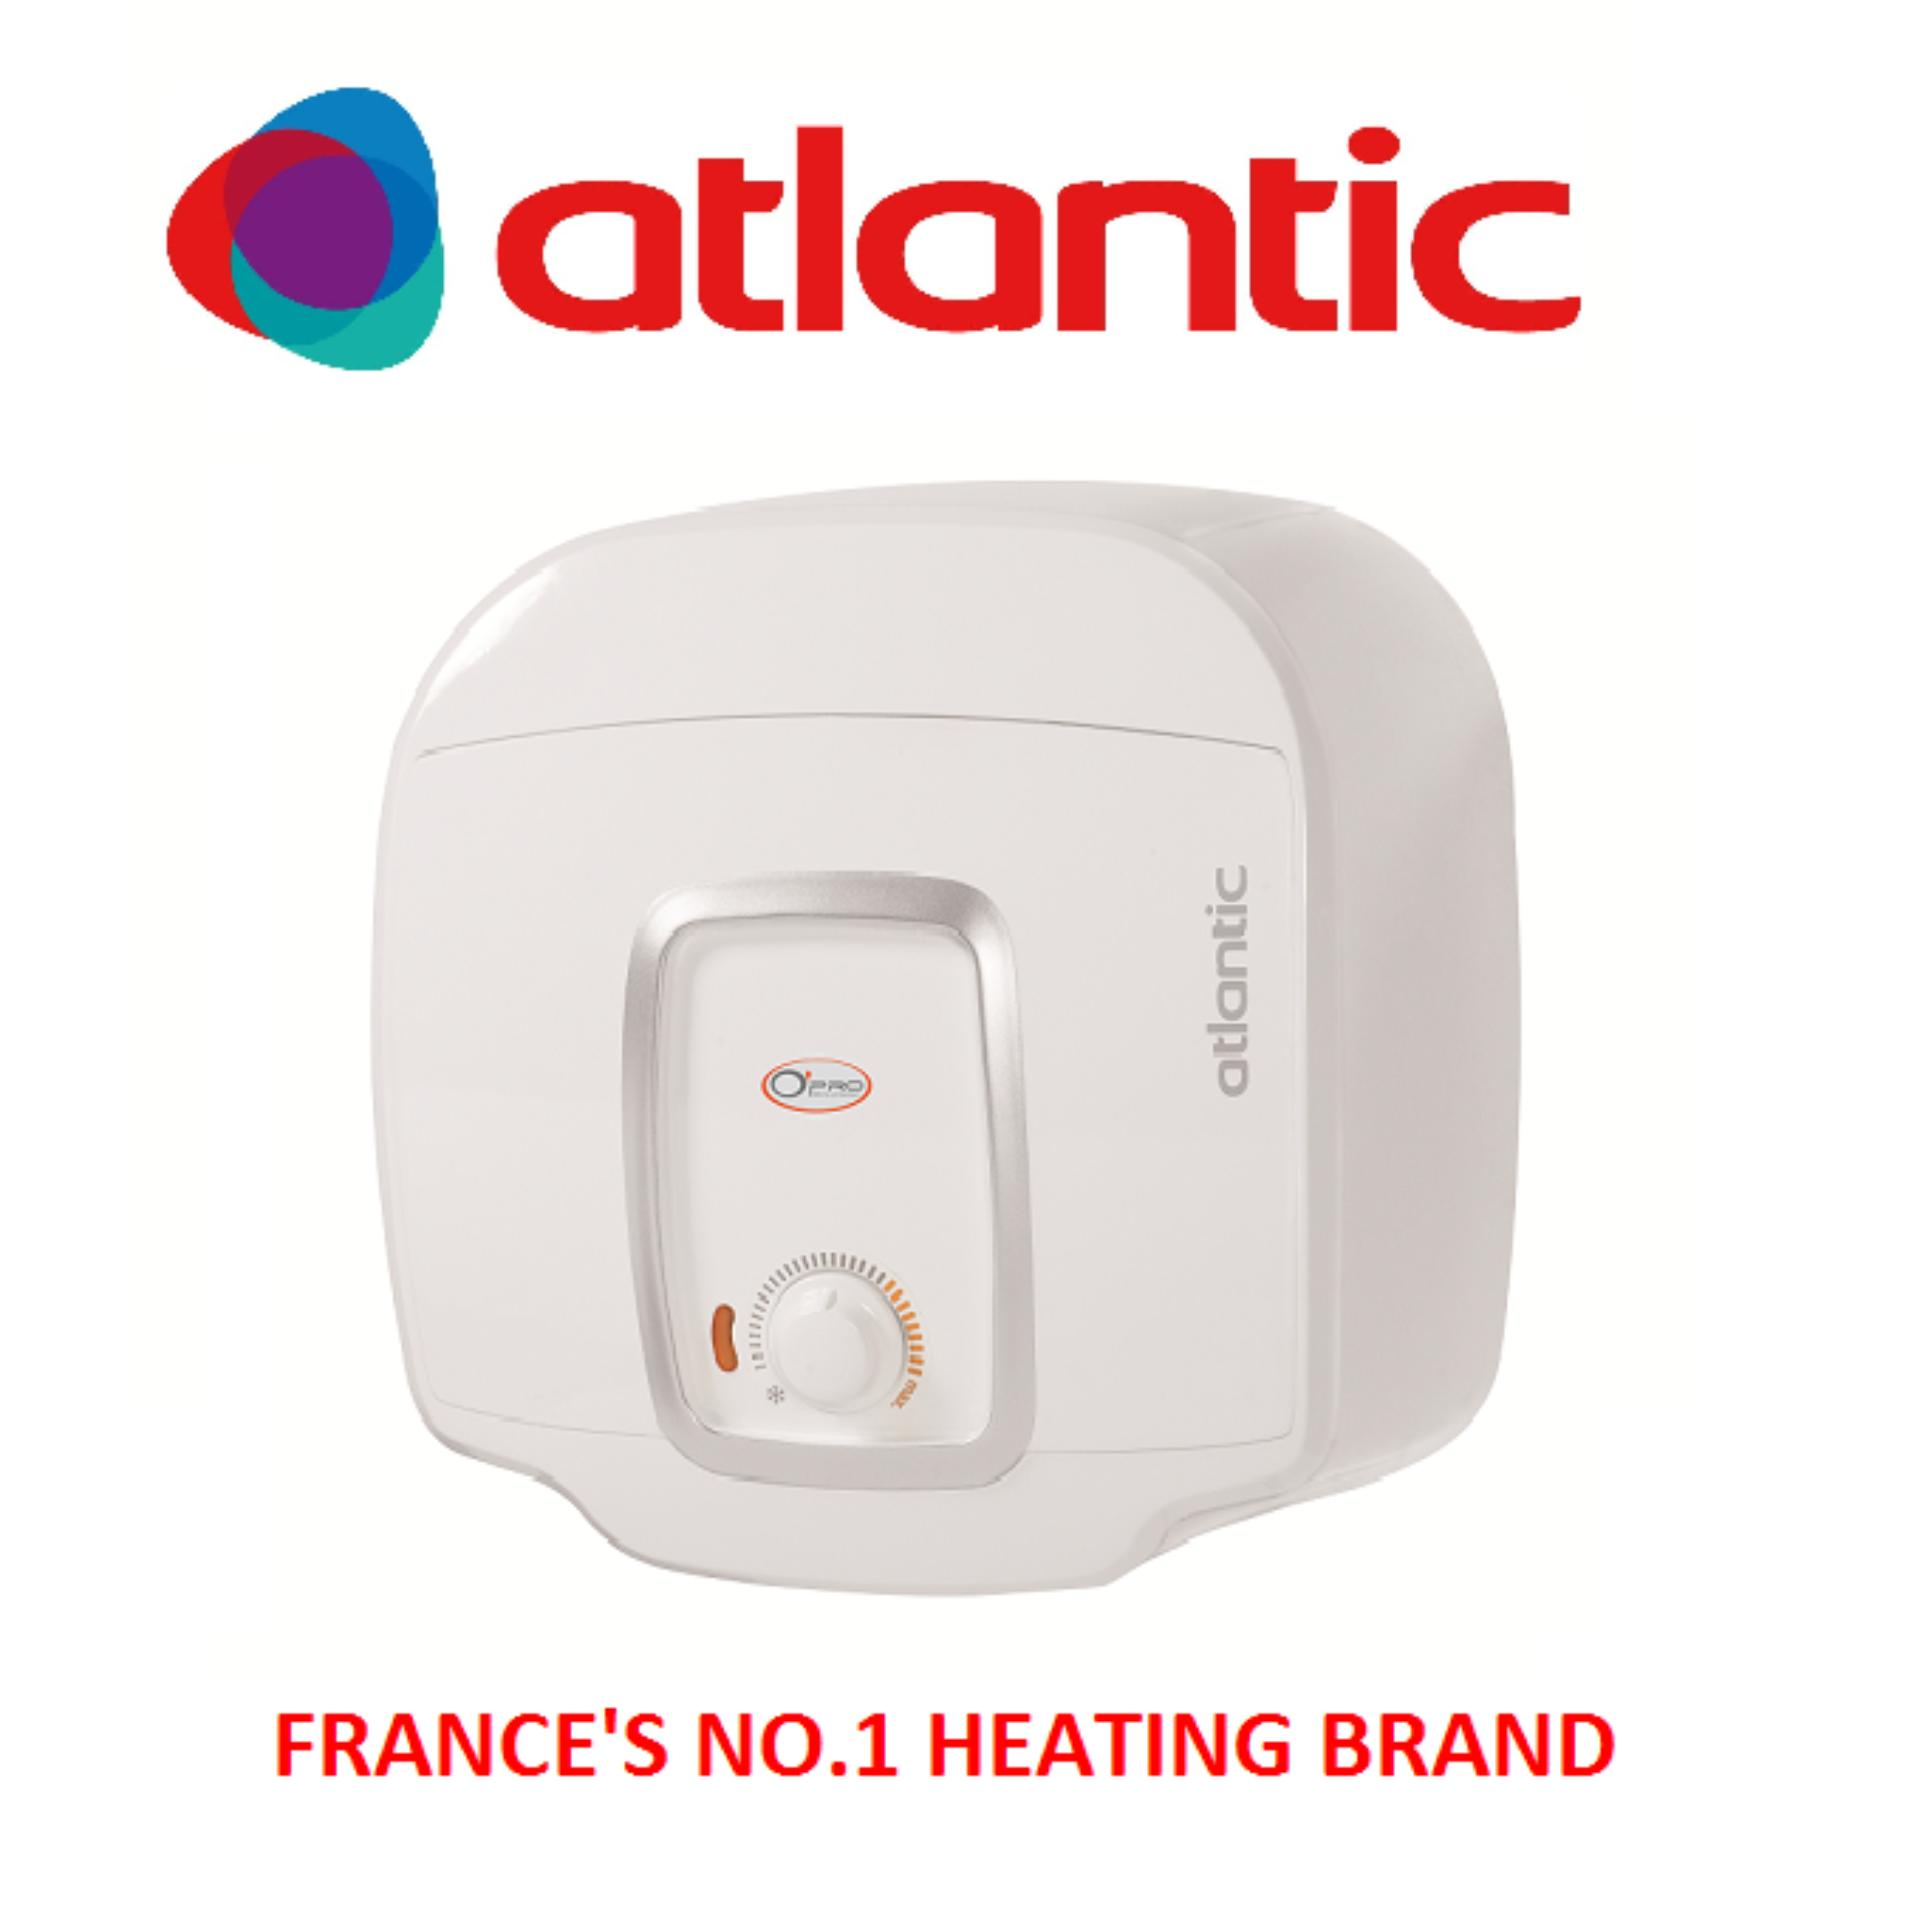 Review Atlantic Swh15Am Ondeo 15L Electric Storage Water Heater Atlantic